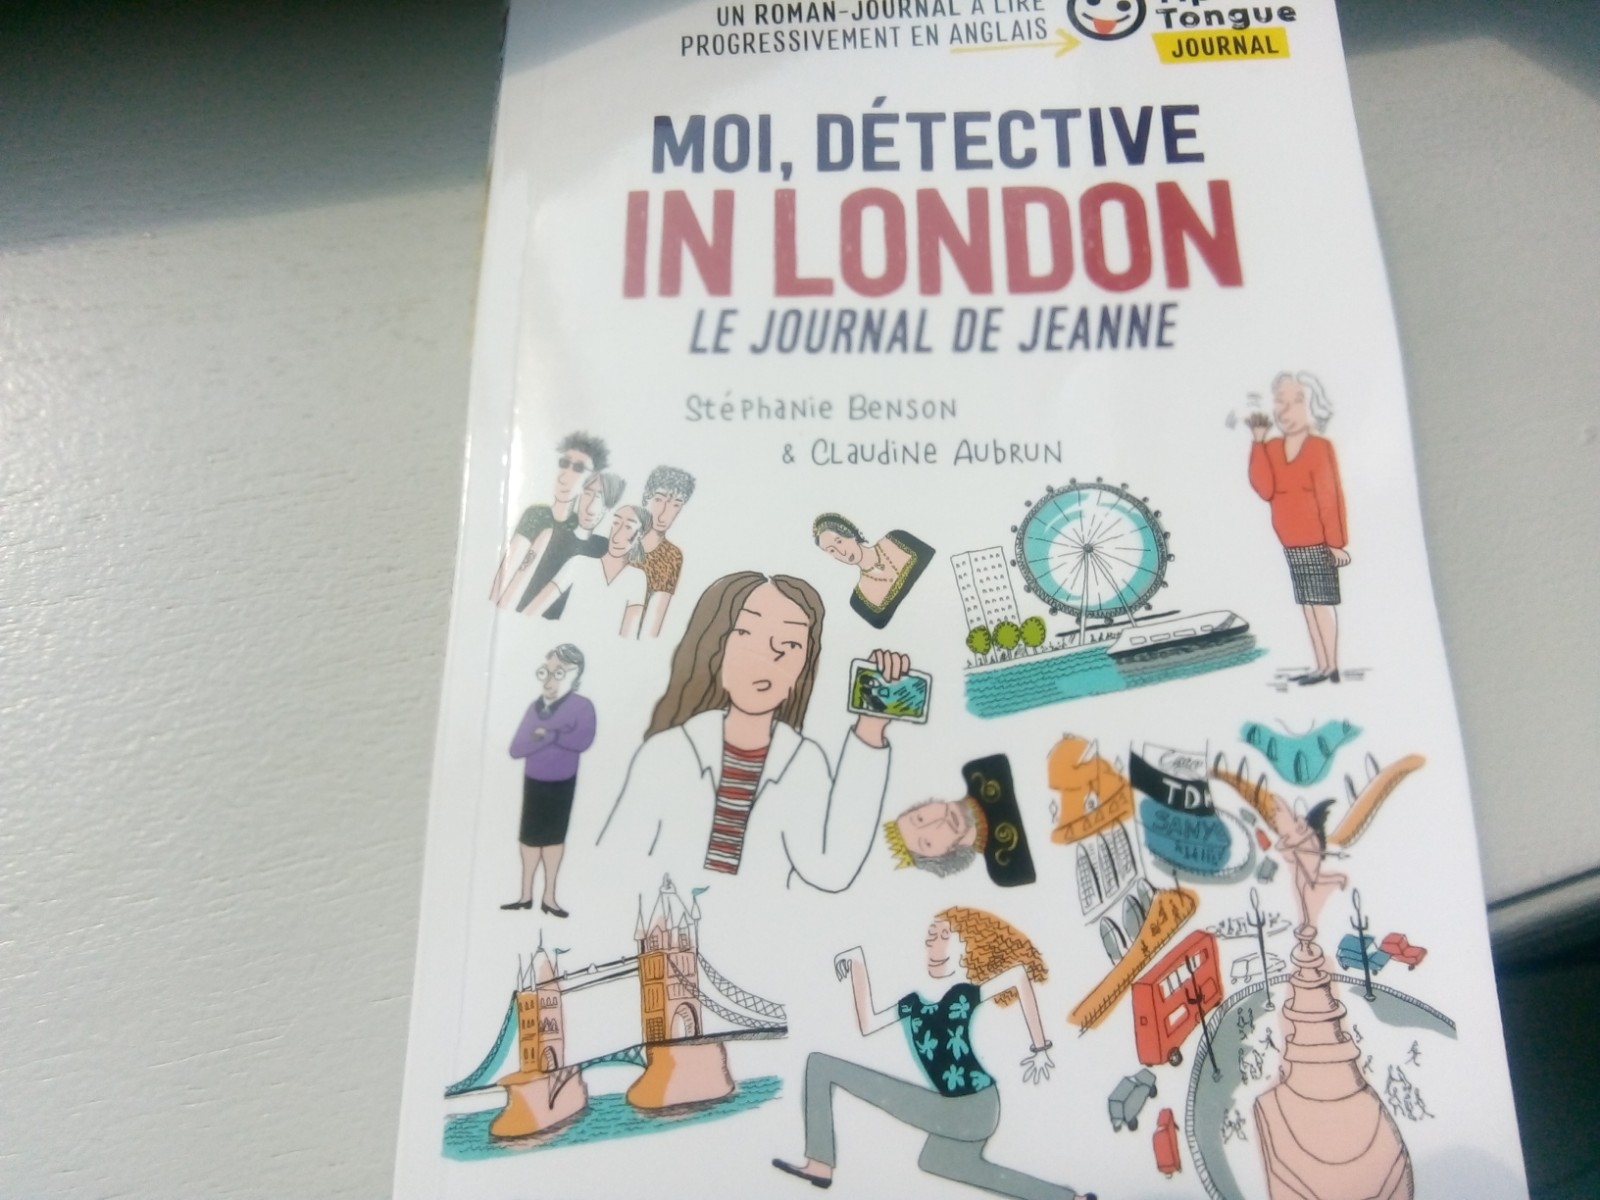 Moi Detective In London Un Roman Journal A Lire